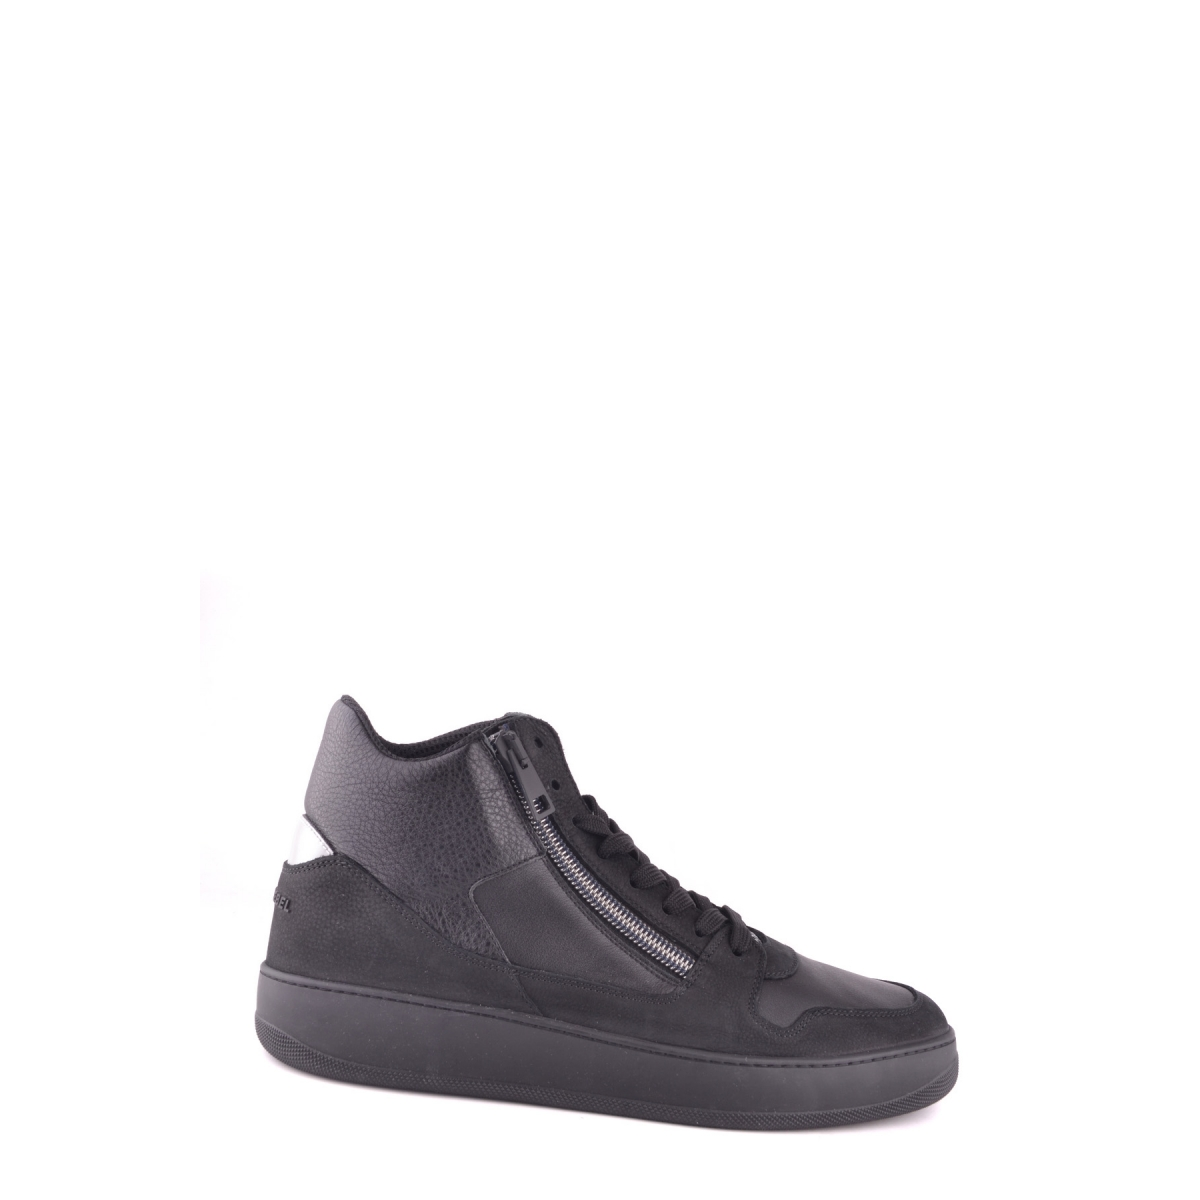 Sneakers alte Hogan 29267IT -20% -20% -20% fa164c